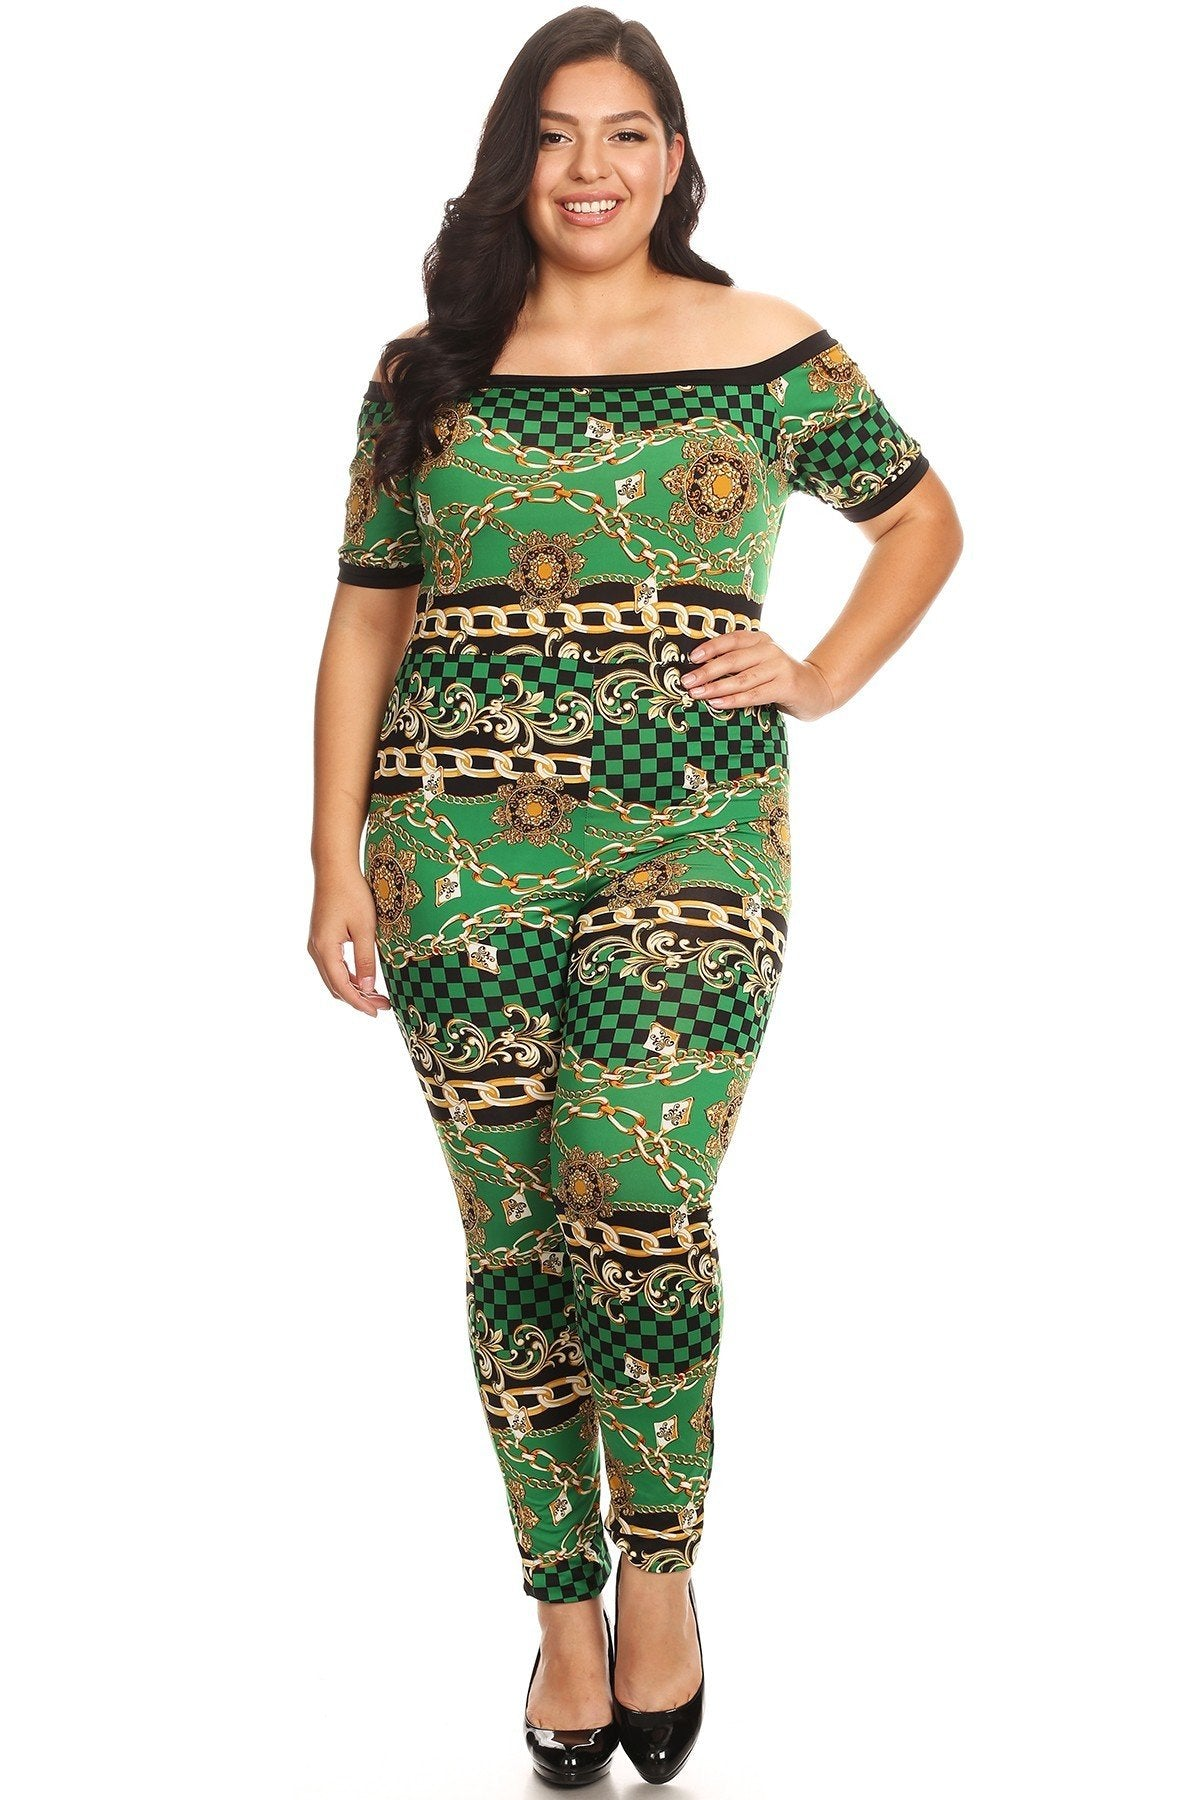 43e2db23e07 Plus Size Chains Printed Bodycon Fit Checkered Jumpsuit – slayboo